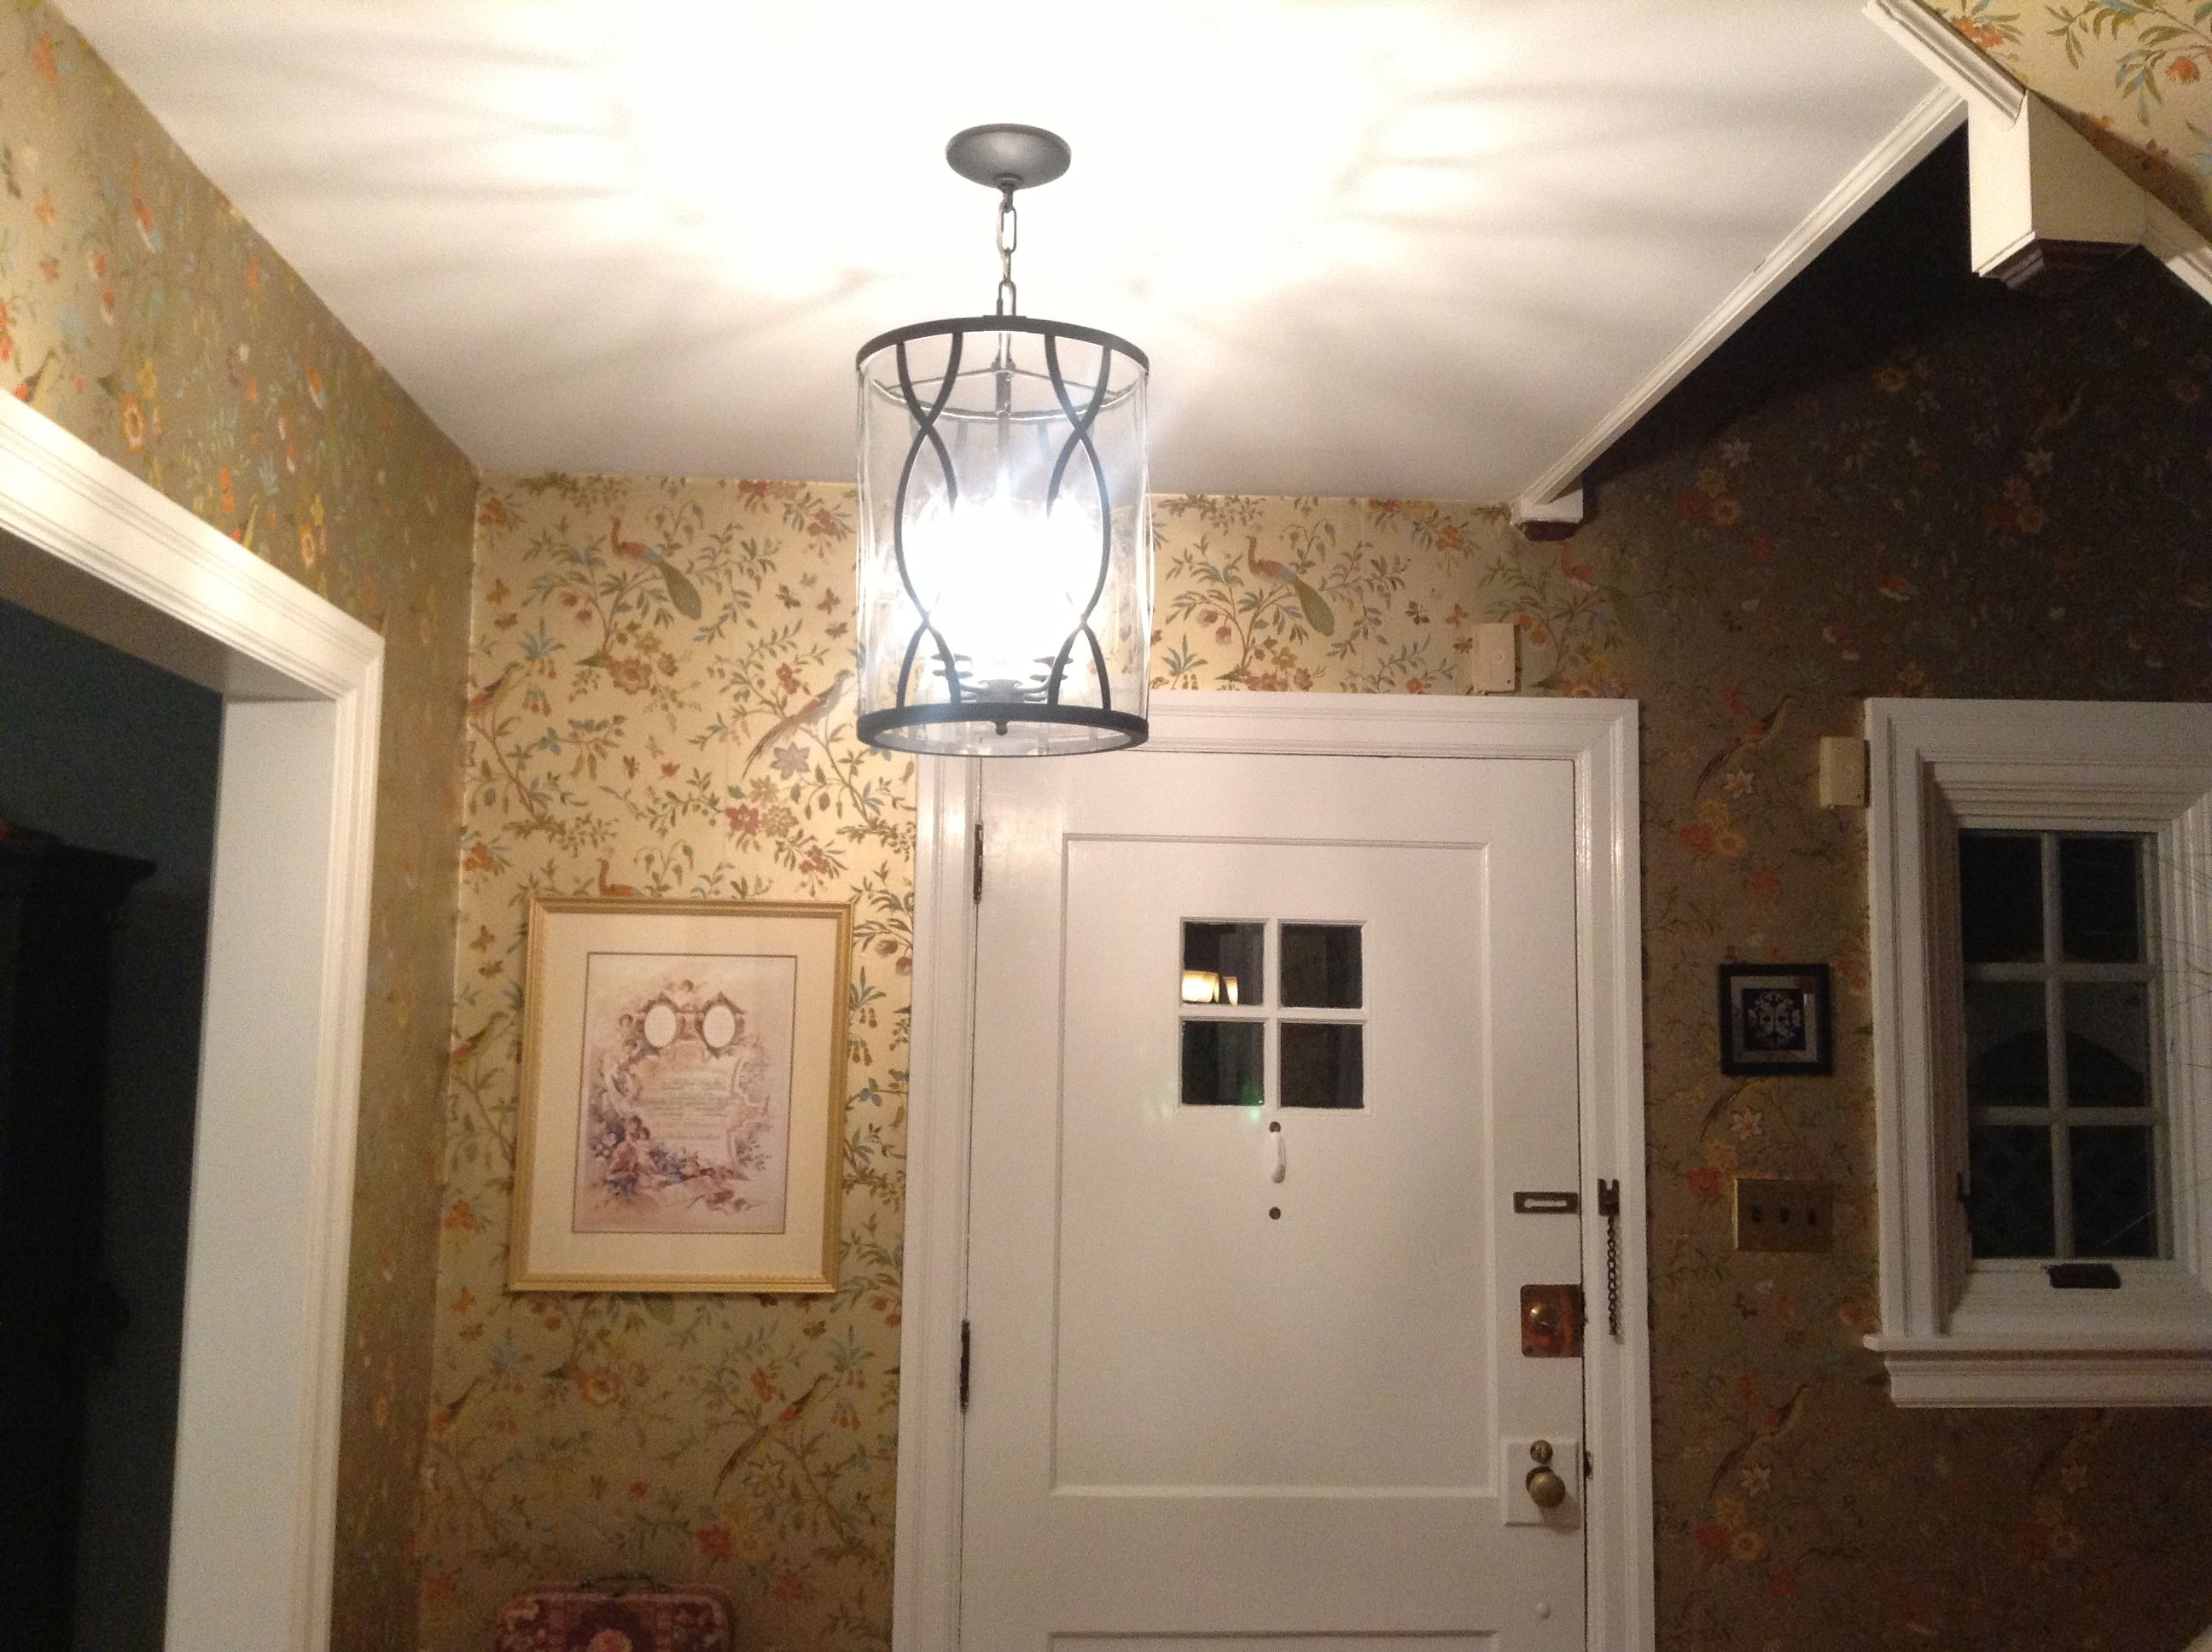 Small Foyer Ceiling Lights : Exquisite tube ceiling hanging lights with shade as modern